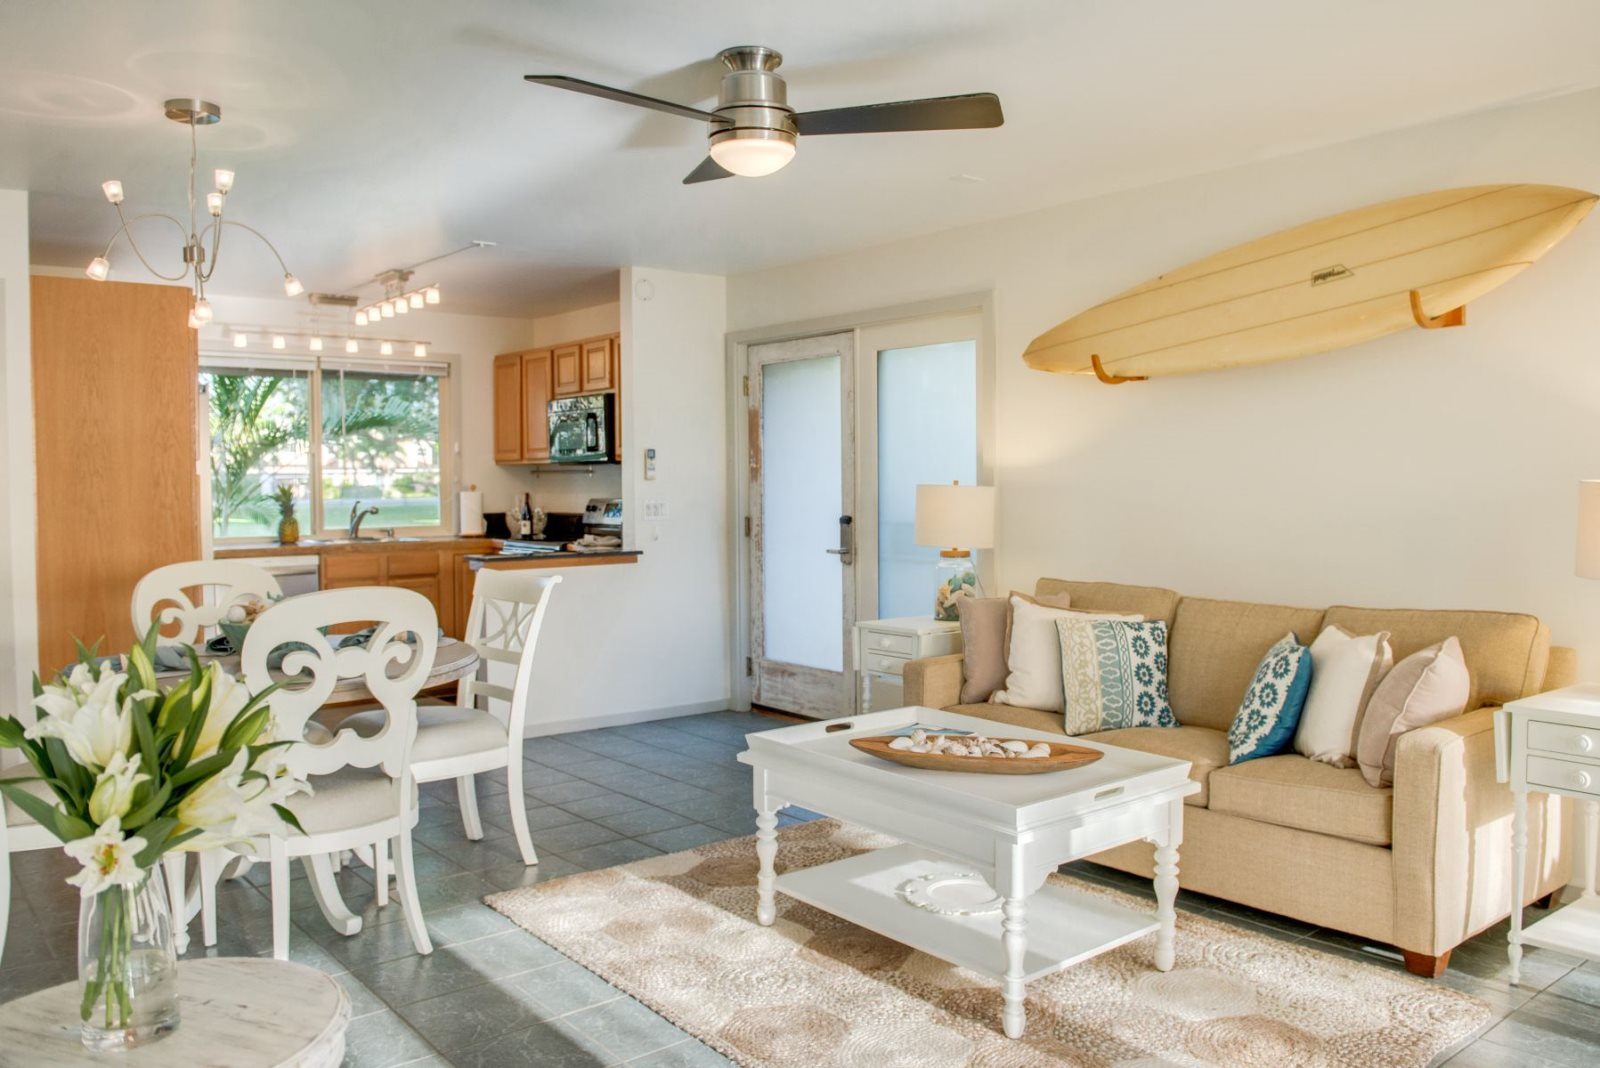 Professionally designed Maui vacation rental condo with beautiful furniture and decor